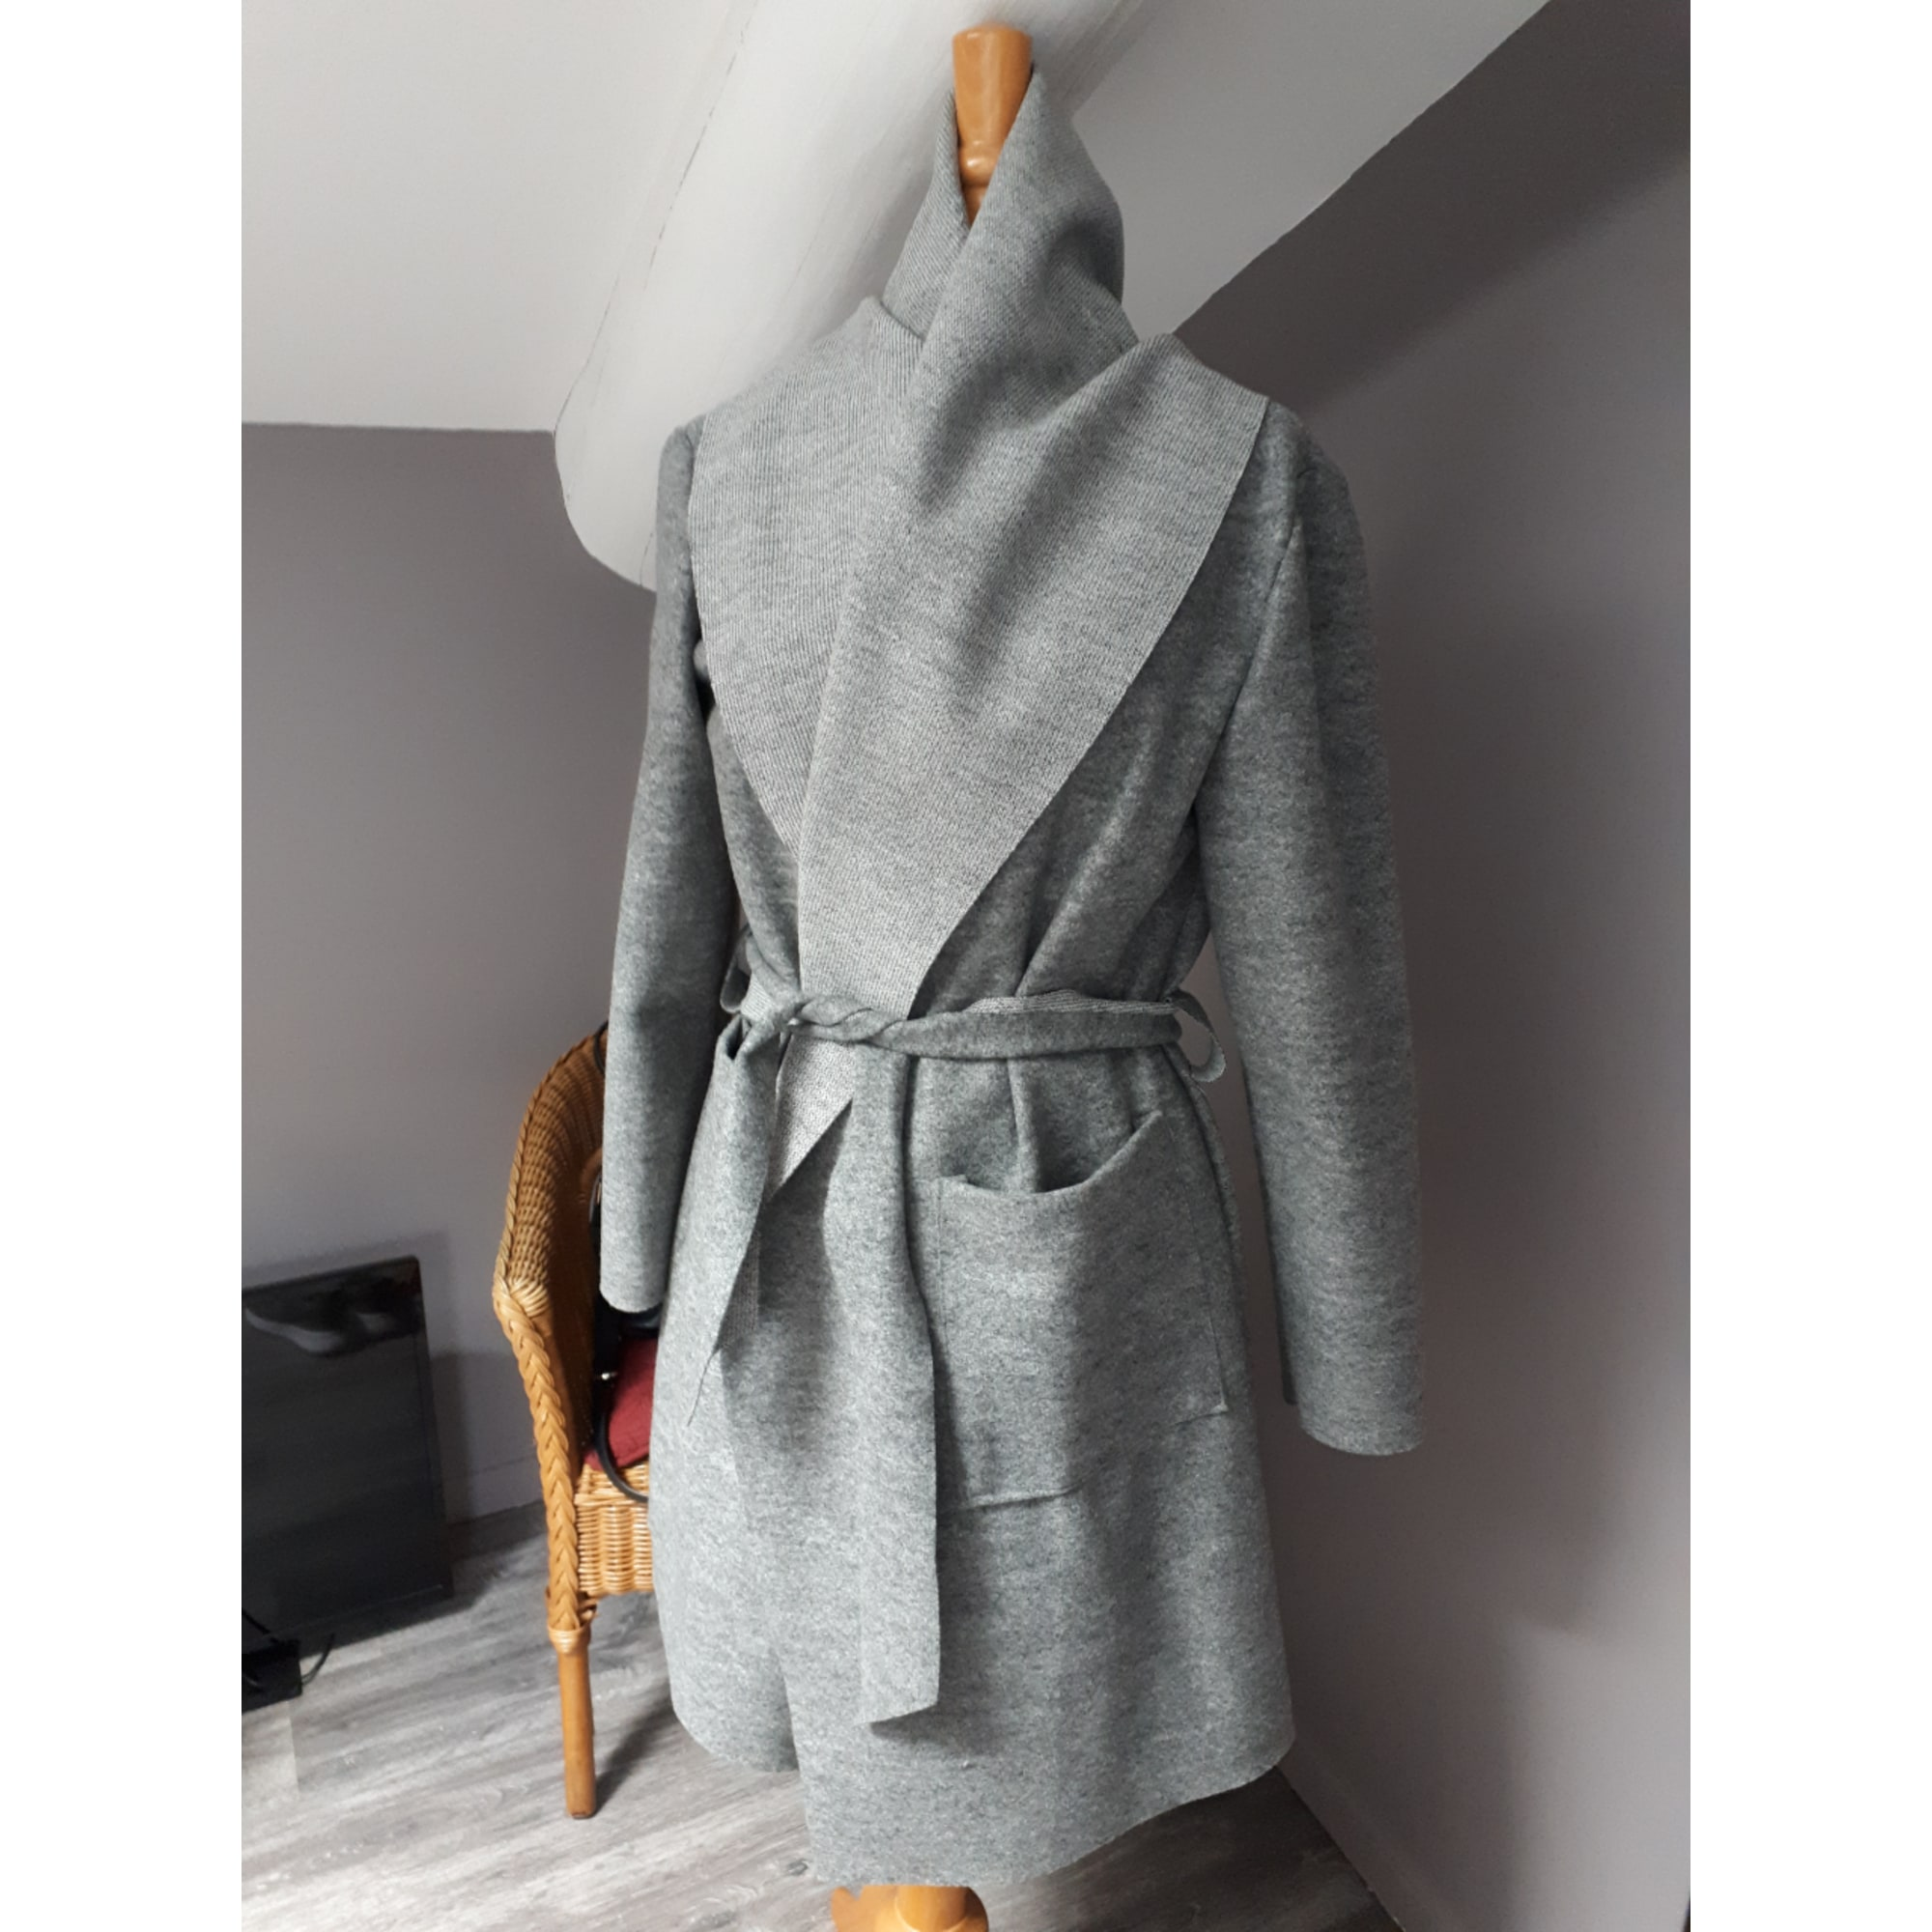 Imperméable, trench MARQUE INCONNUE Gris, anthracite